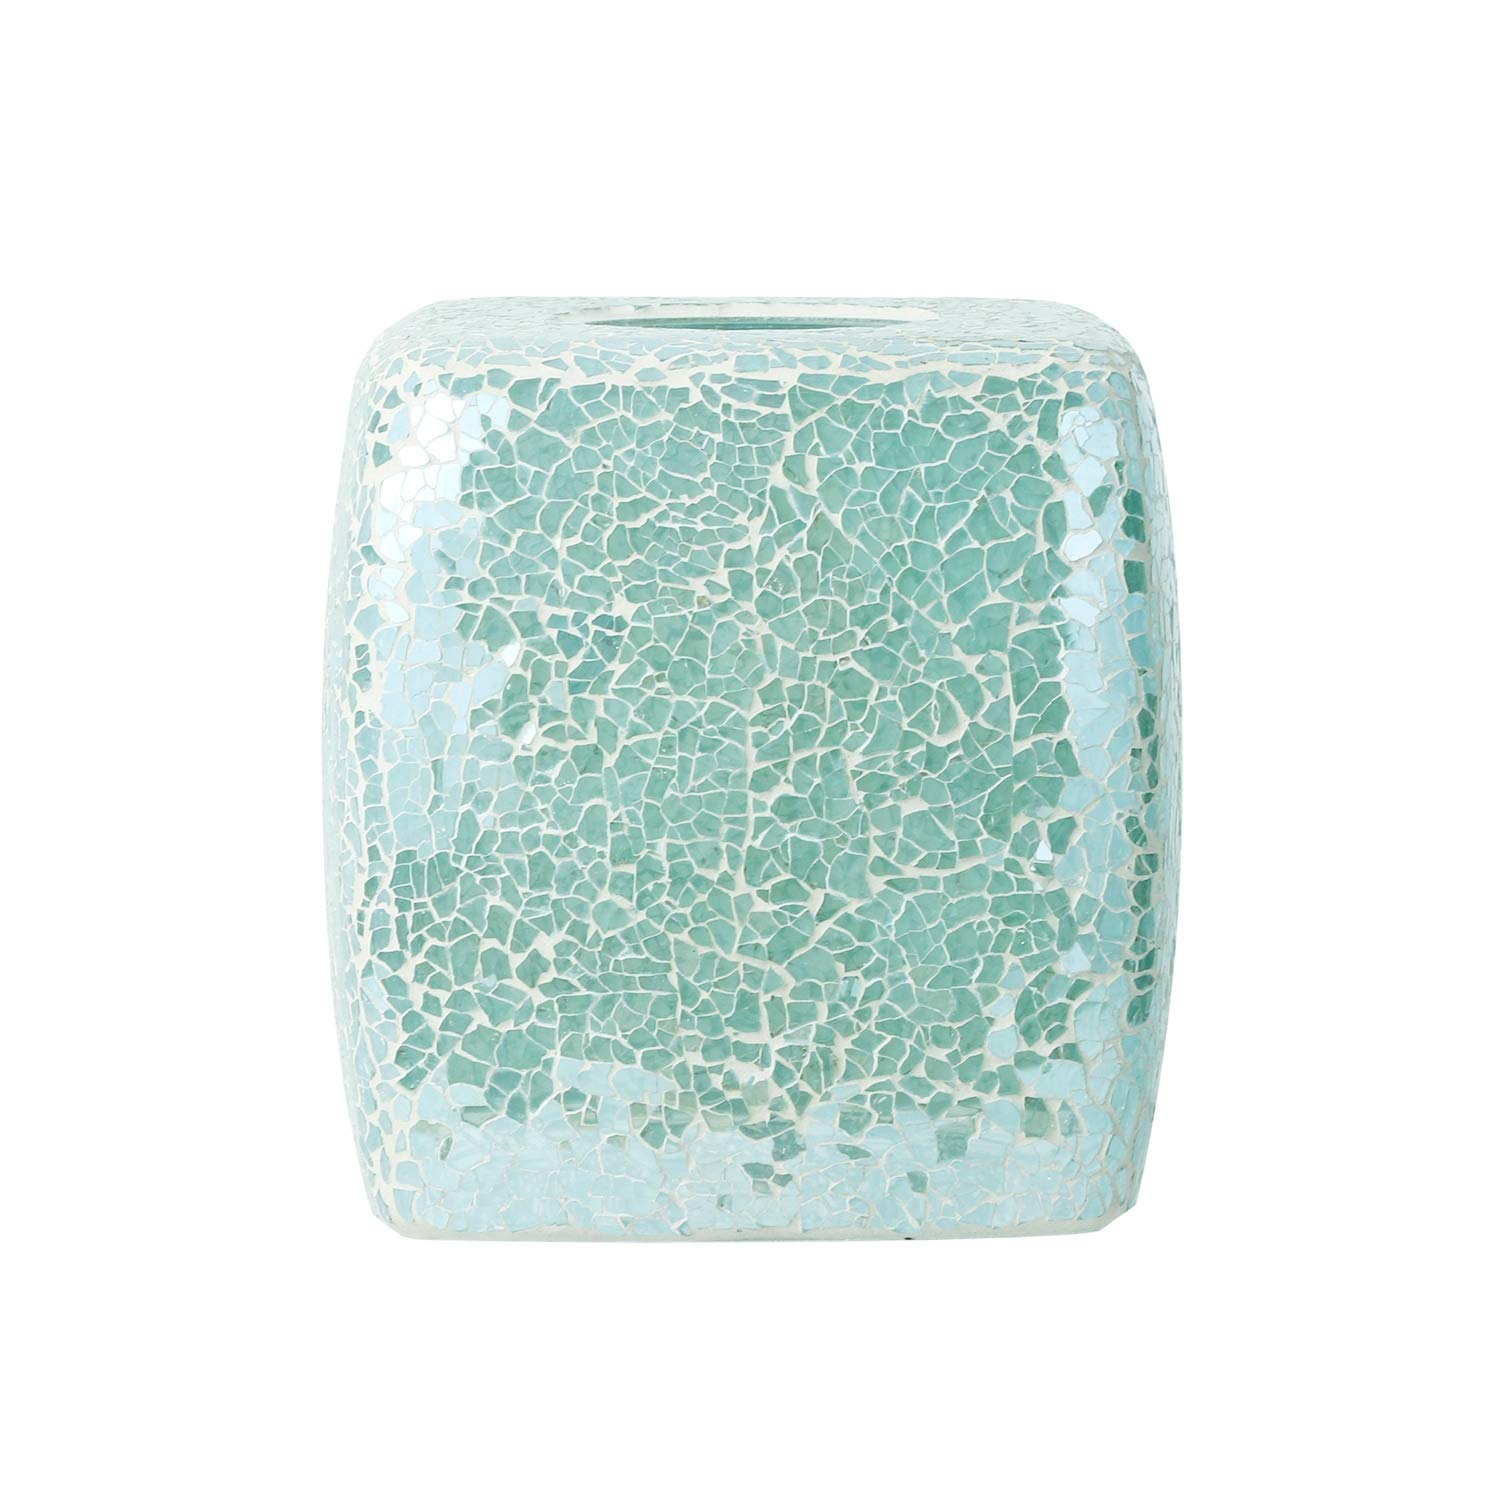 Whole Housewares Mosaic Glass Tissue Holder Decorative Tissue Cover Square Box (Turquoise) by Whole Housewares